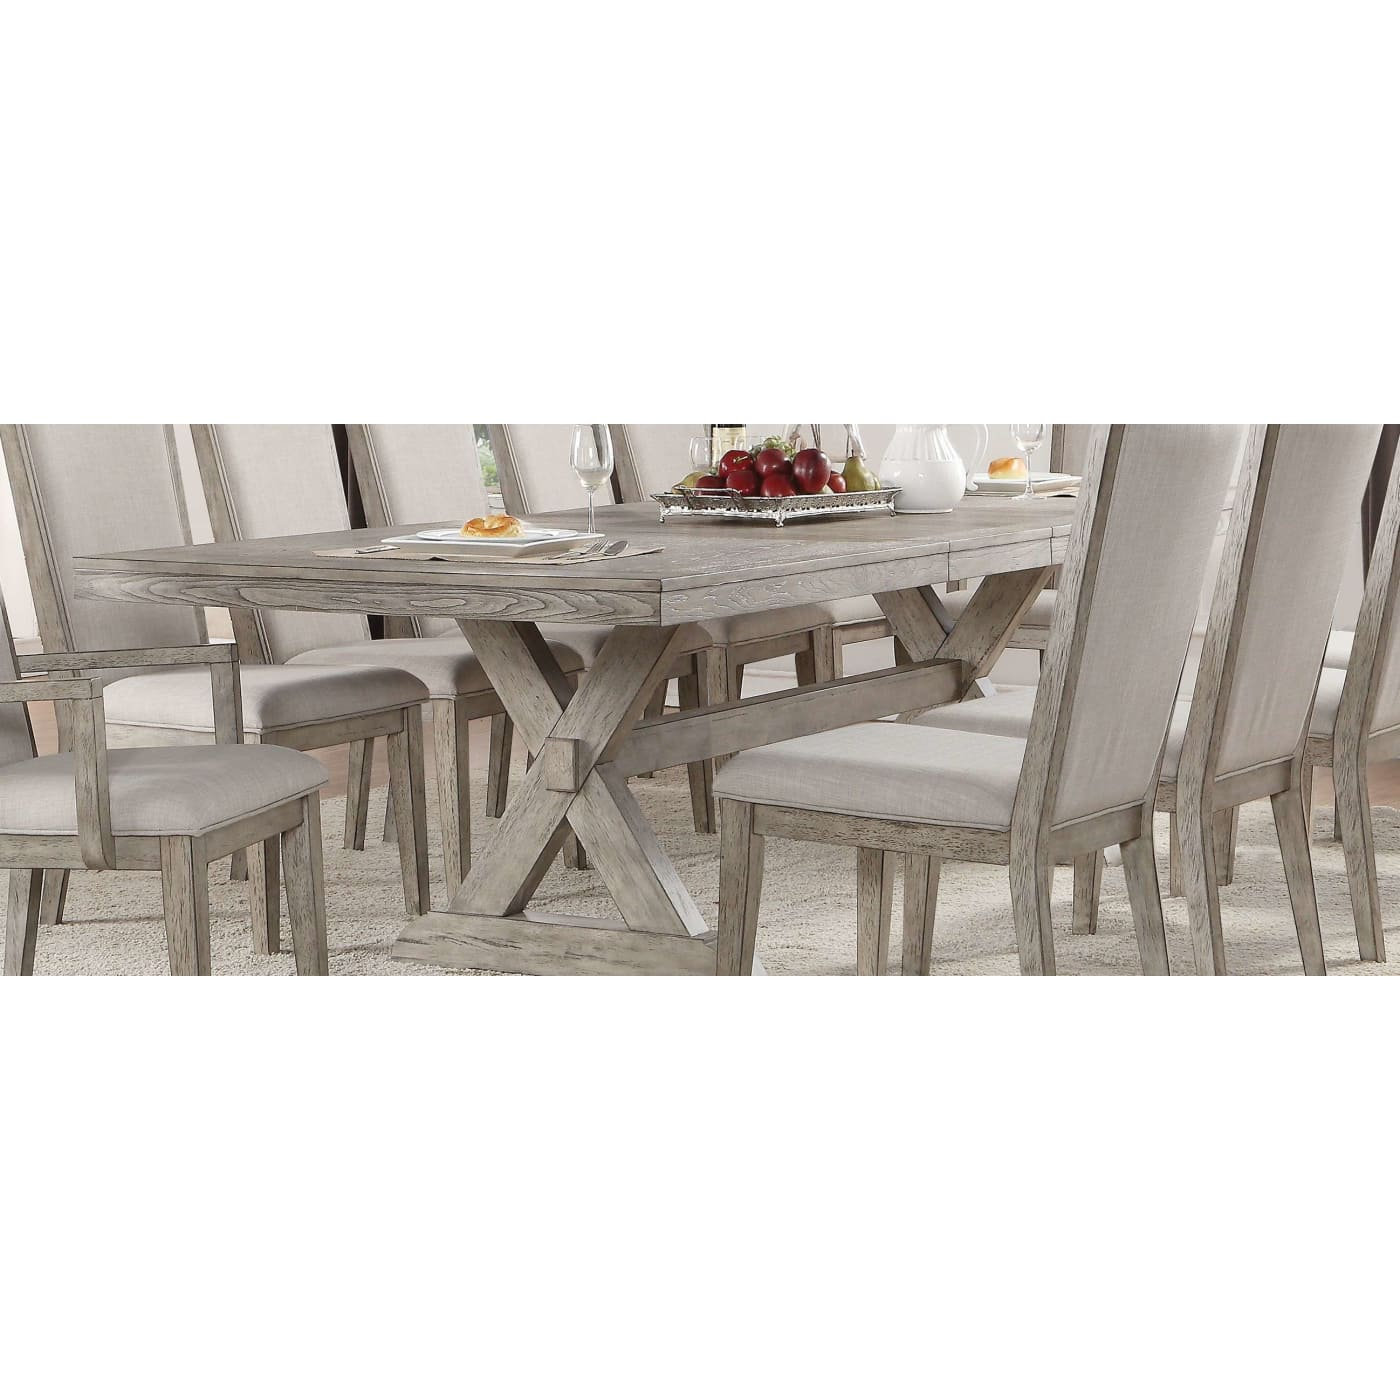 80831560ed6b Rocky Gray Oak Rectangular Dining Table. Table Only, Chairs Sold  Seperately. Acme-72860 ...